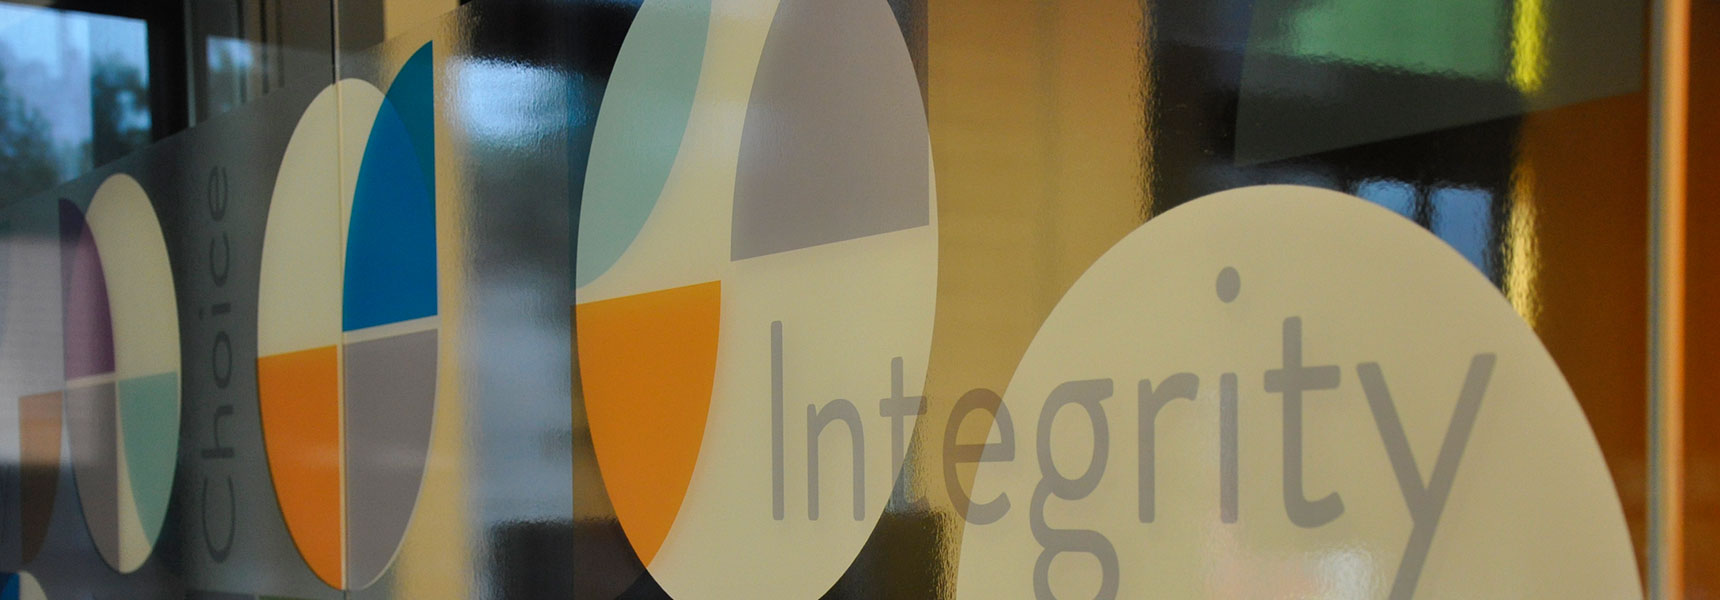 Internal window with the word Integrity